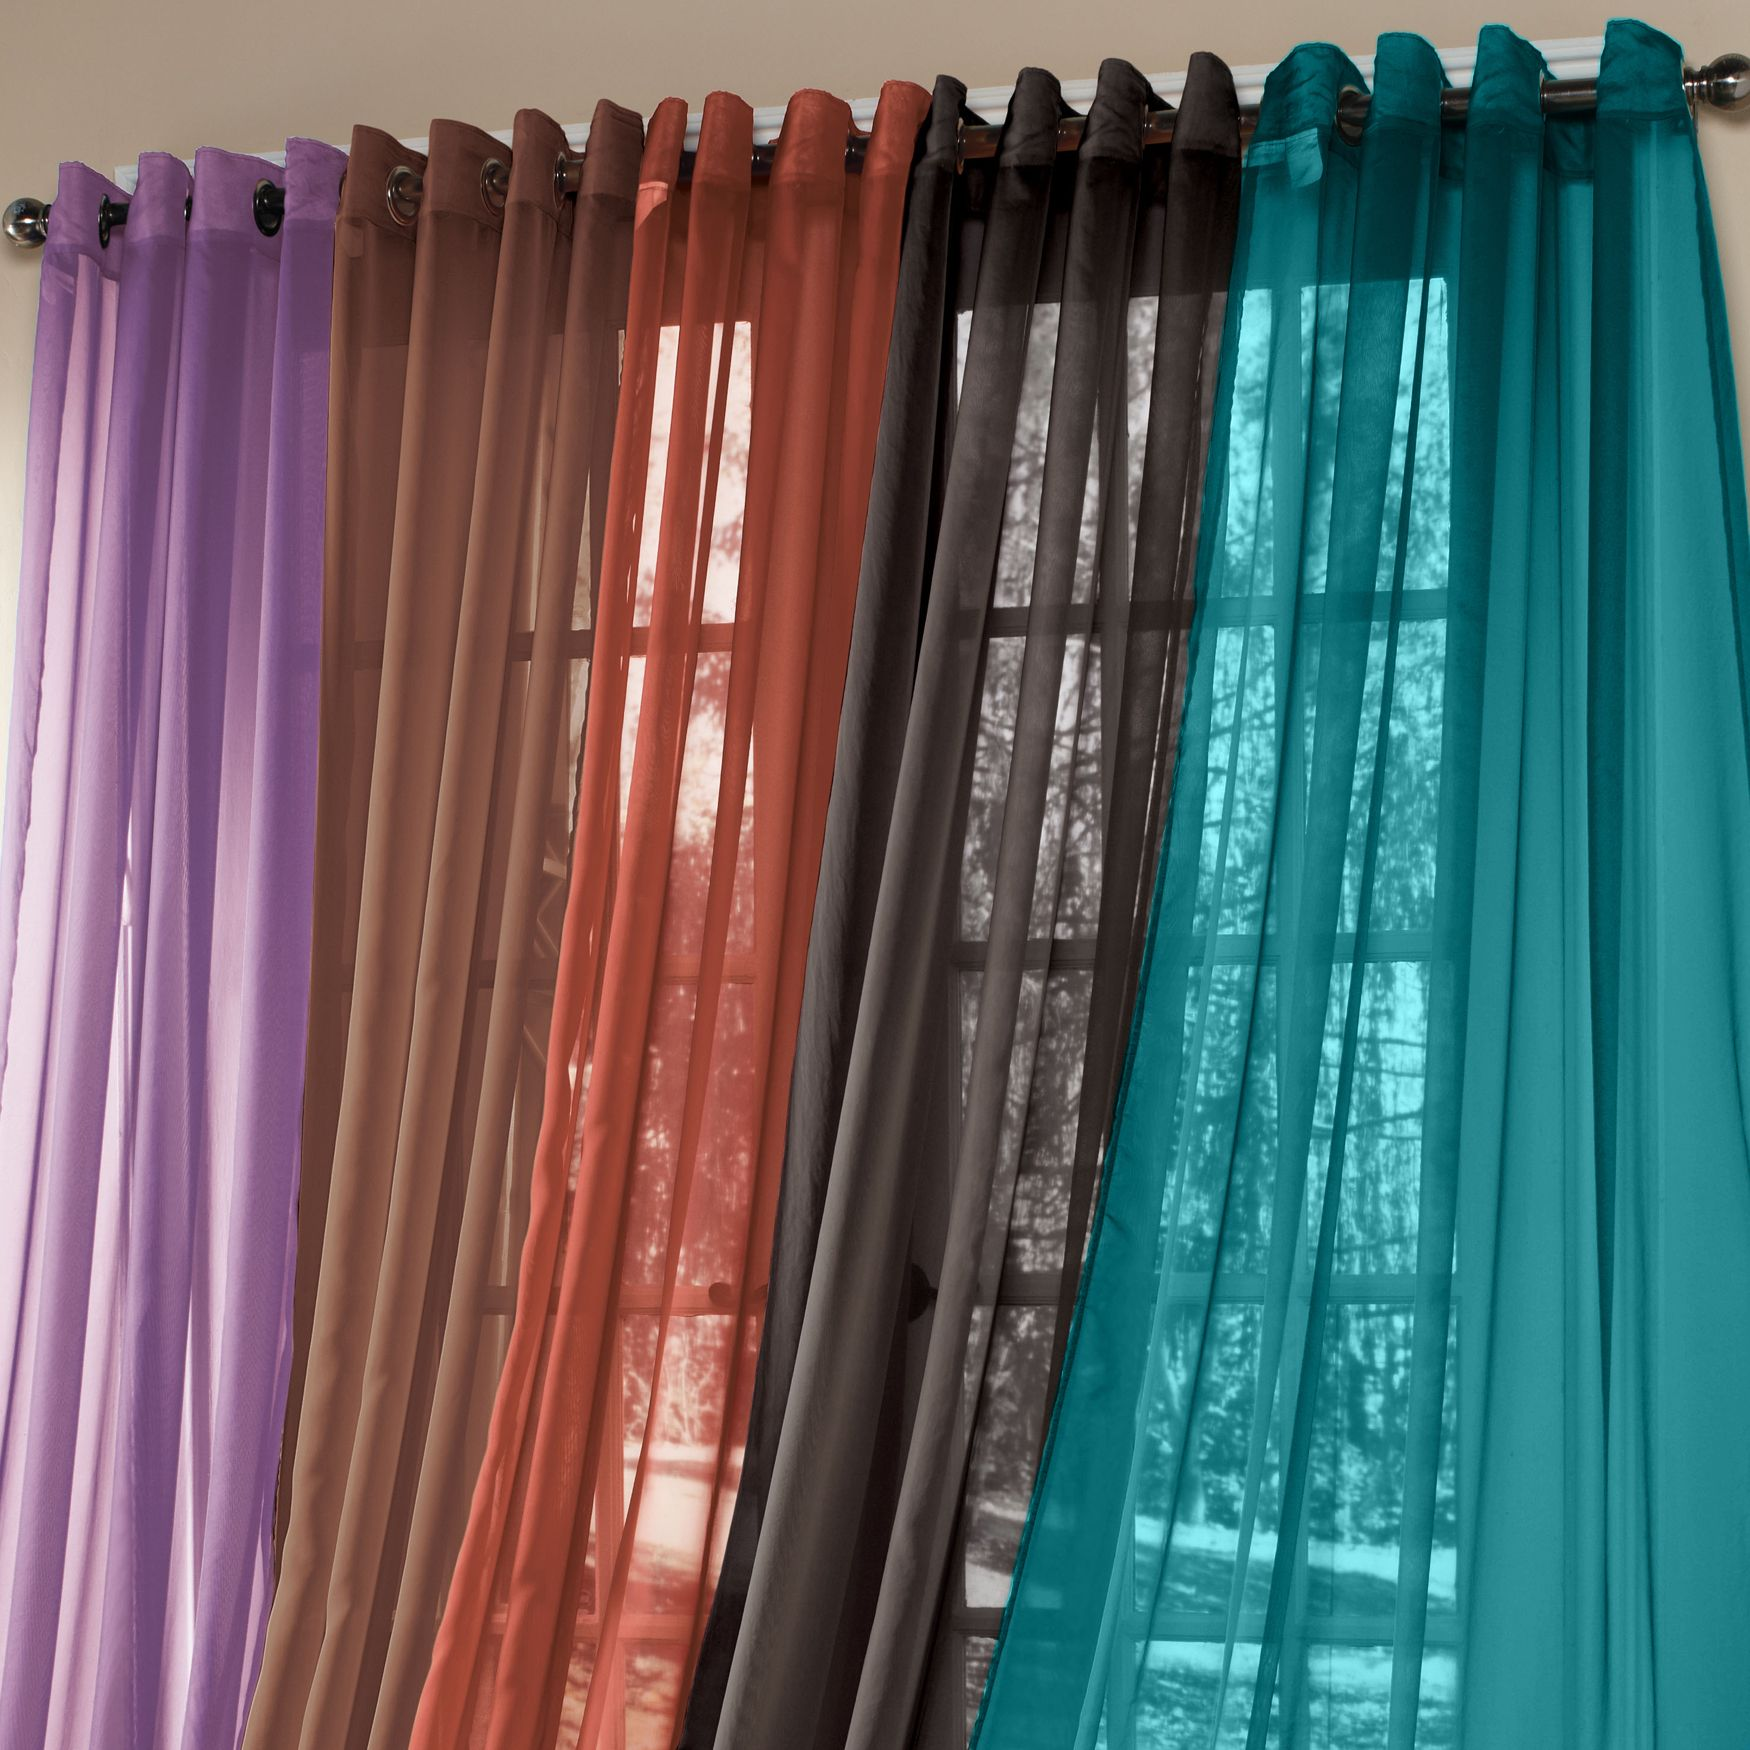 BrylaneHome® Studio Sheer Voile Grommet Panels | Curtains U0026 Drapes |  Brylanehome   Teal Curtains